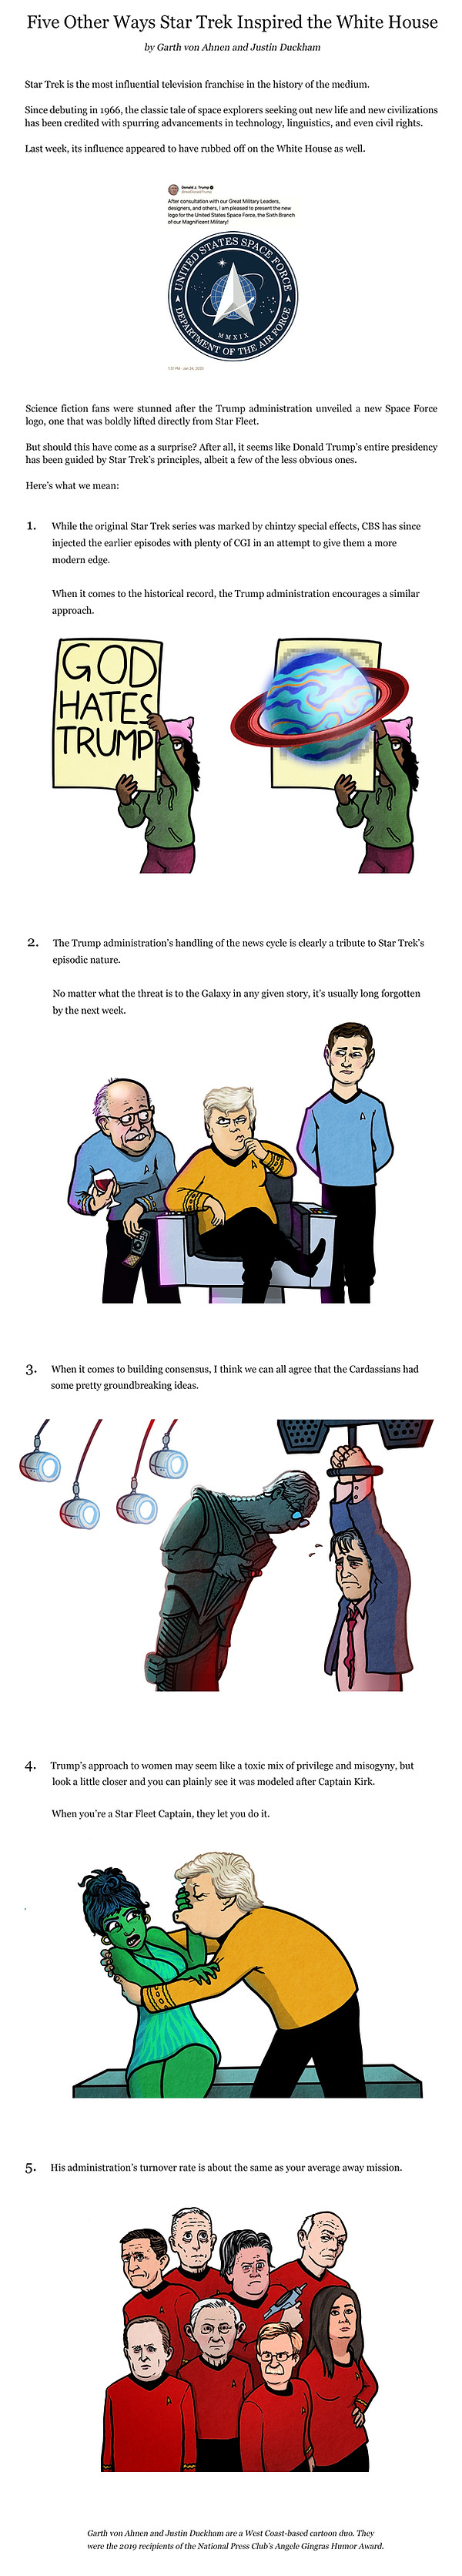 Star Trek and Trump long 3.jpg